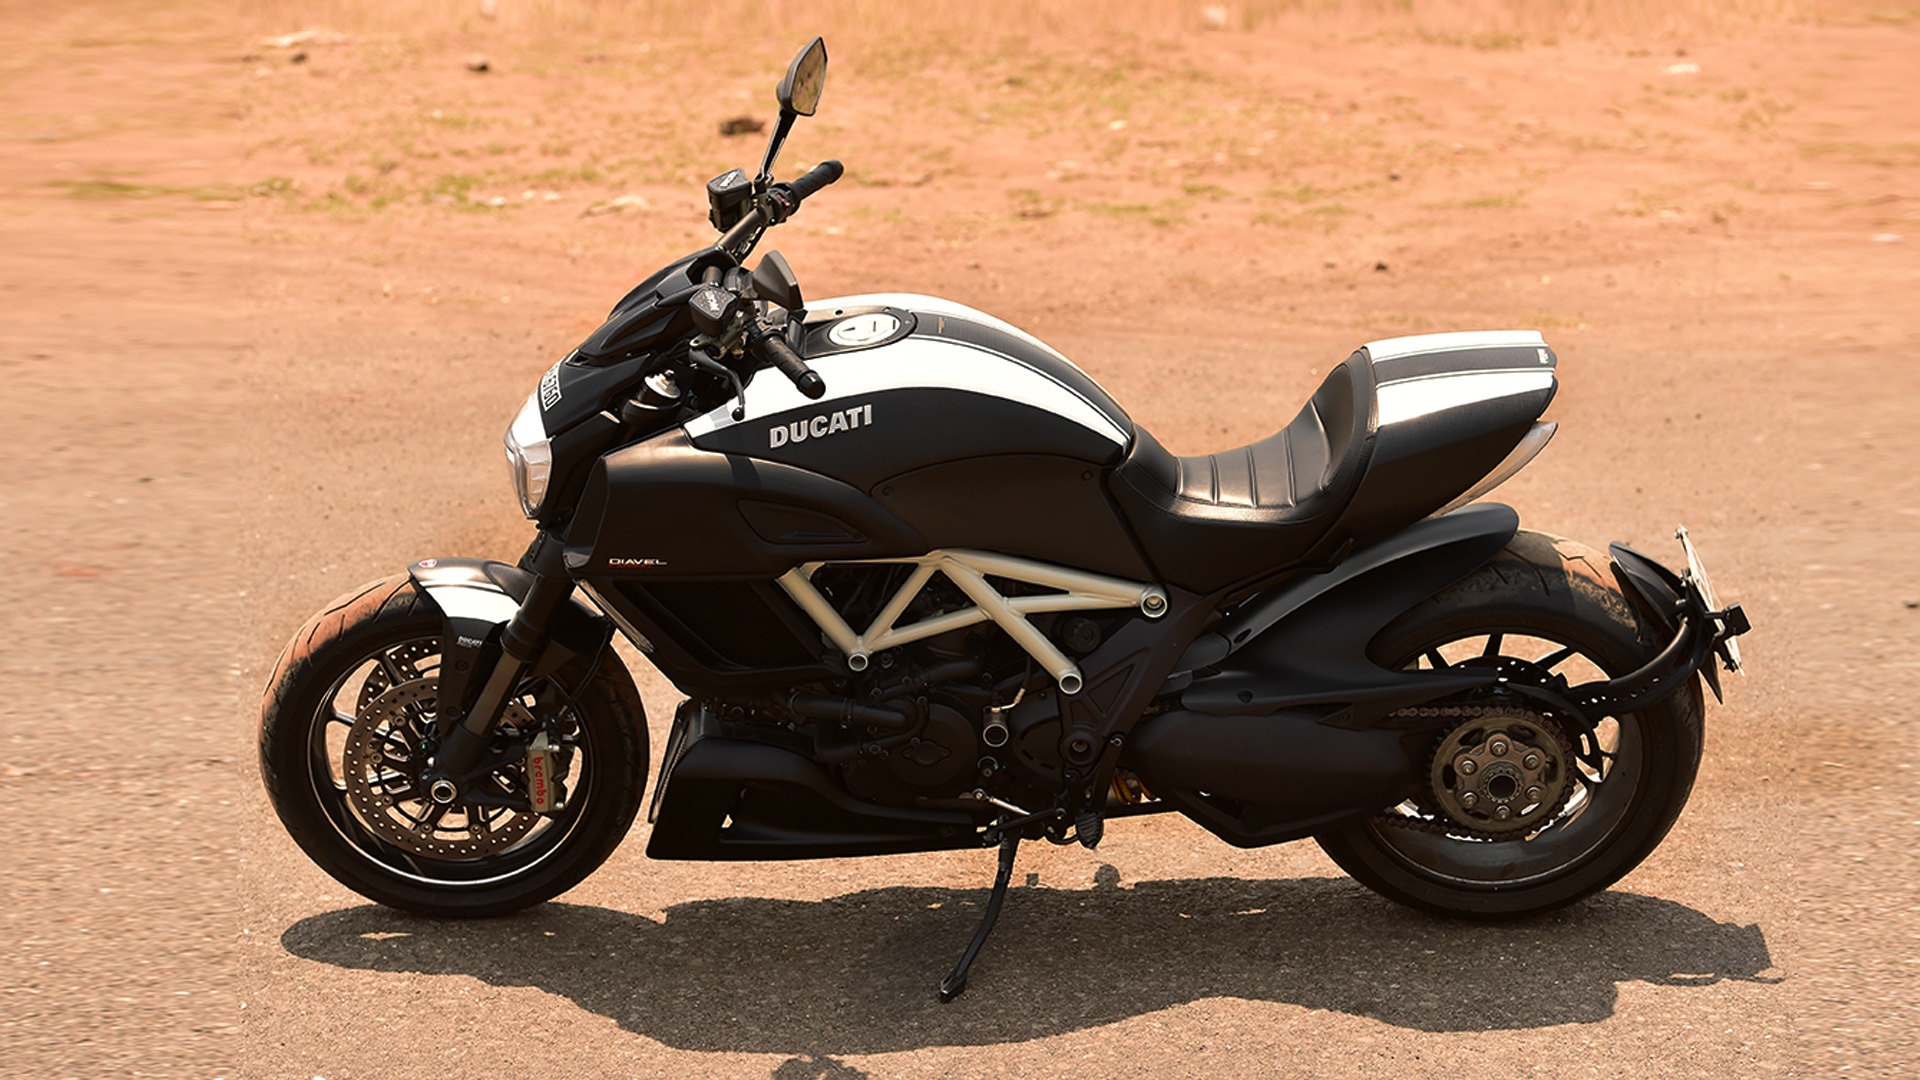 Ducati Diavel 2015 Carbon Price Mileage Reviews Specification